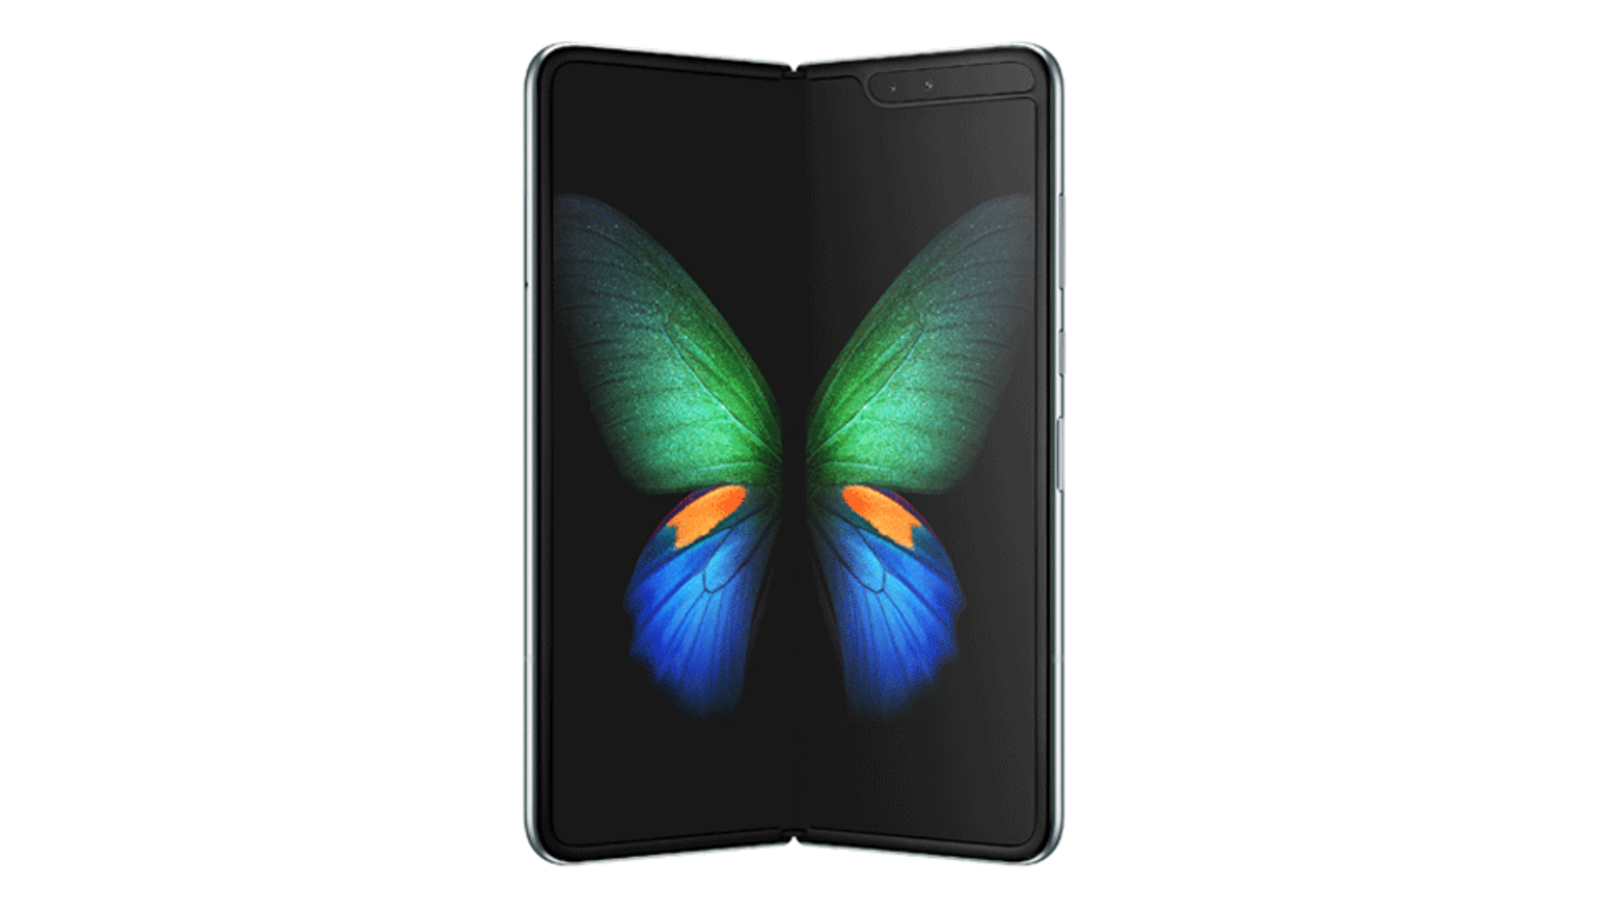 Galaxy Fold Has Reportedly Passed Durability Tests and Is Ready for Launch